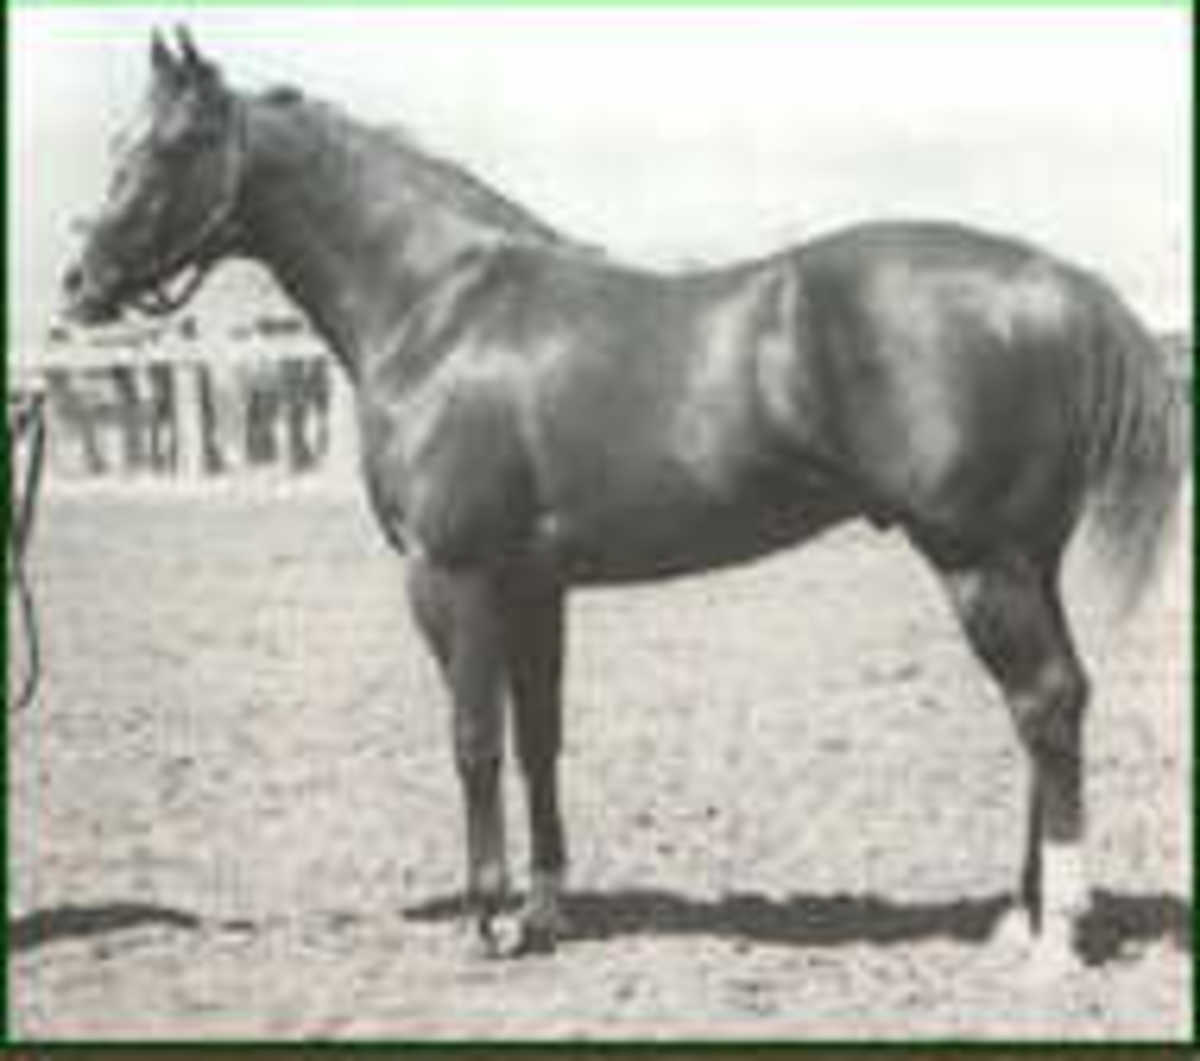 Lightning Bar, son of the Three Bars, a common outcross on the foundation Quarter Horse bloodlines, sire of the highly influential 75% foundation Quarter Horse, Doc Bar.